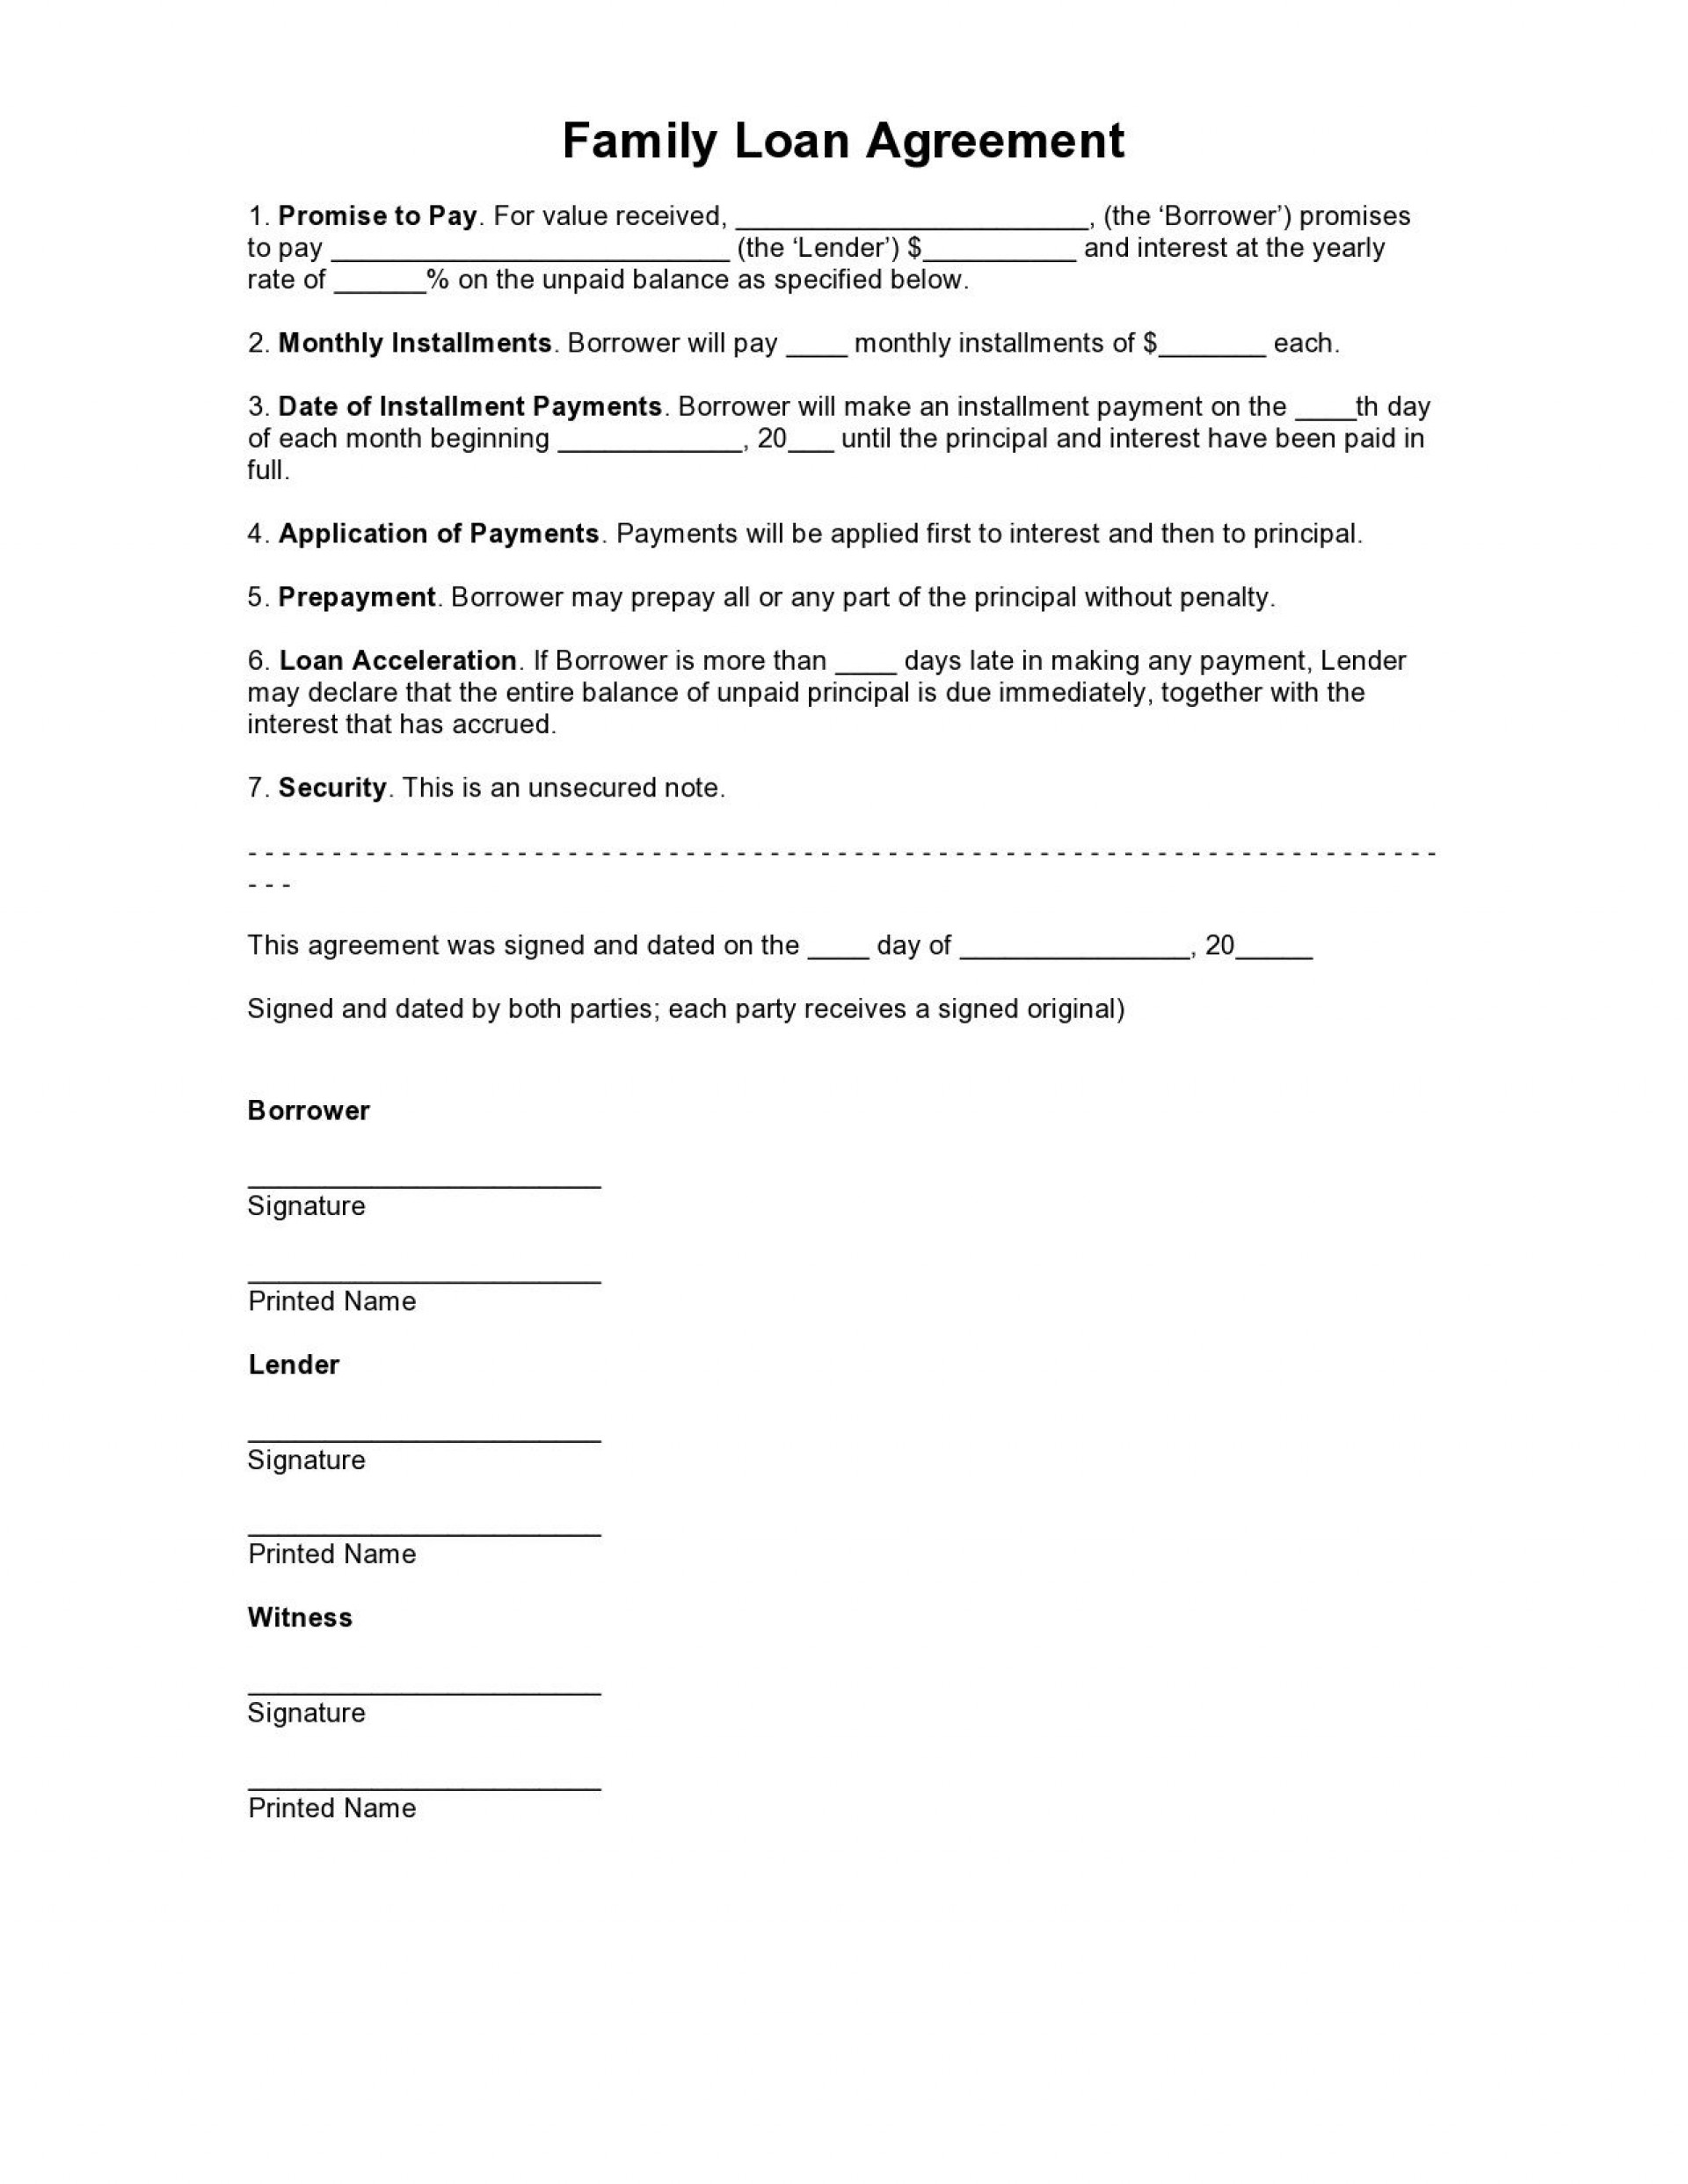 002 Astounding Family Loan Agreement Template Free Uk Example  Simple1920